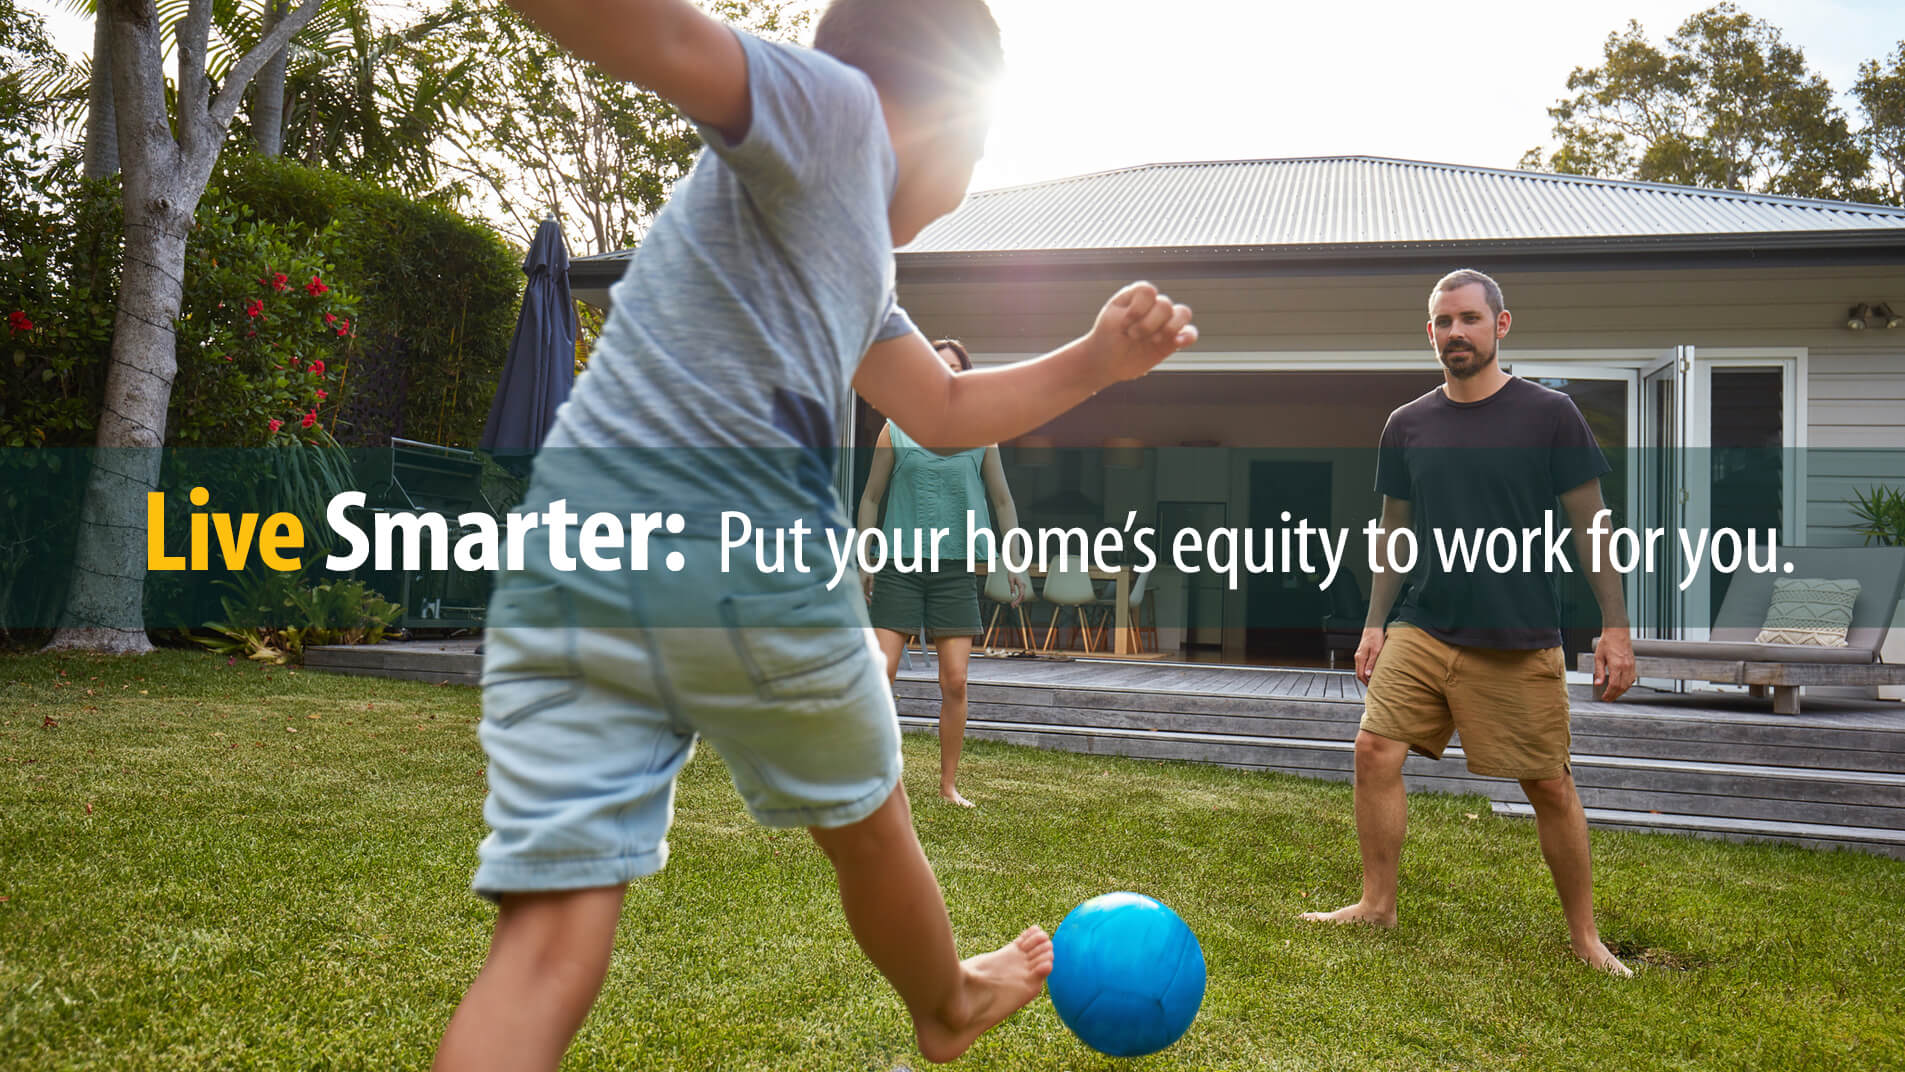 Dad, son play soccer in yard of home from which they will borrow against home equity